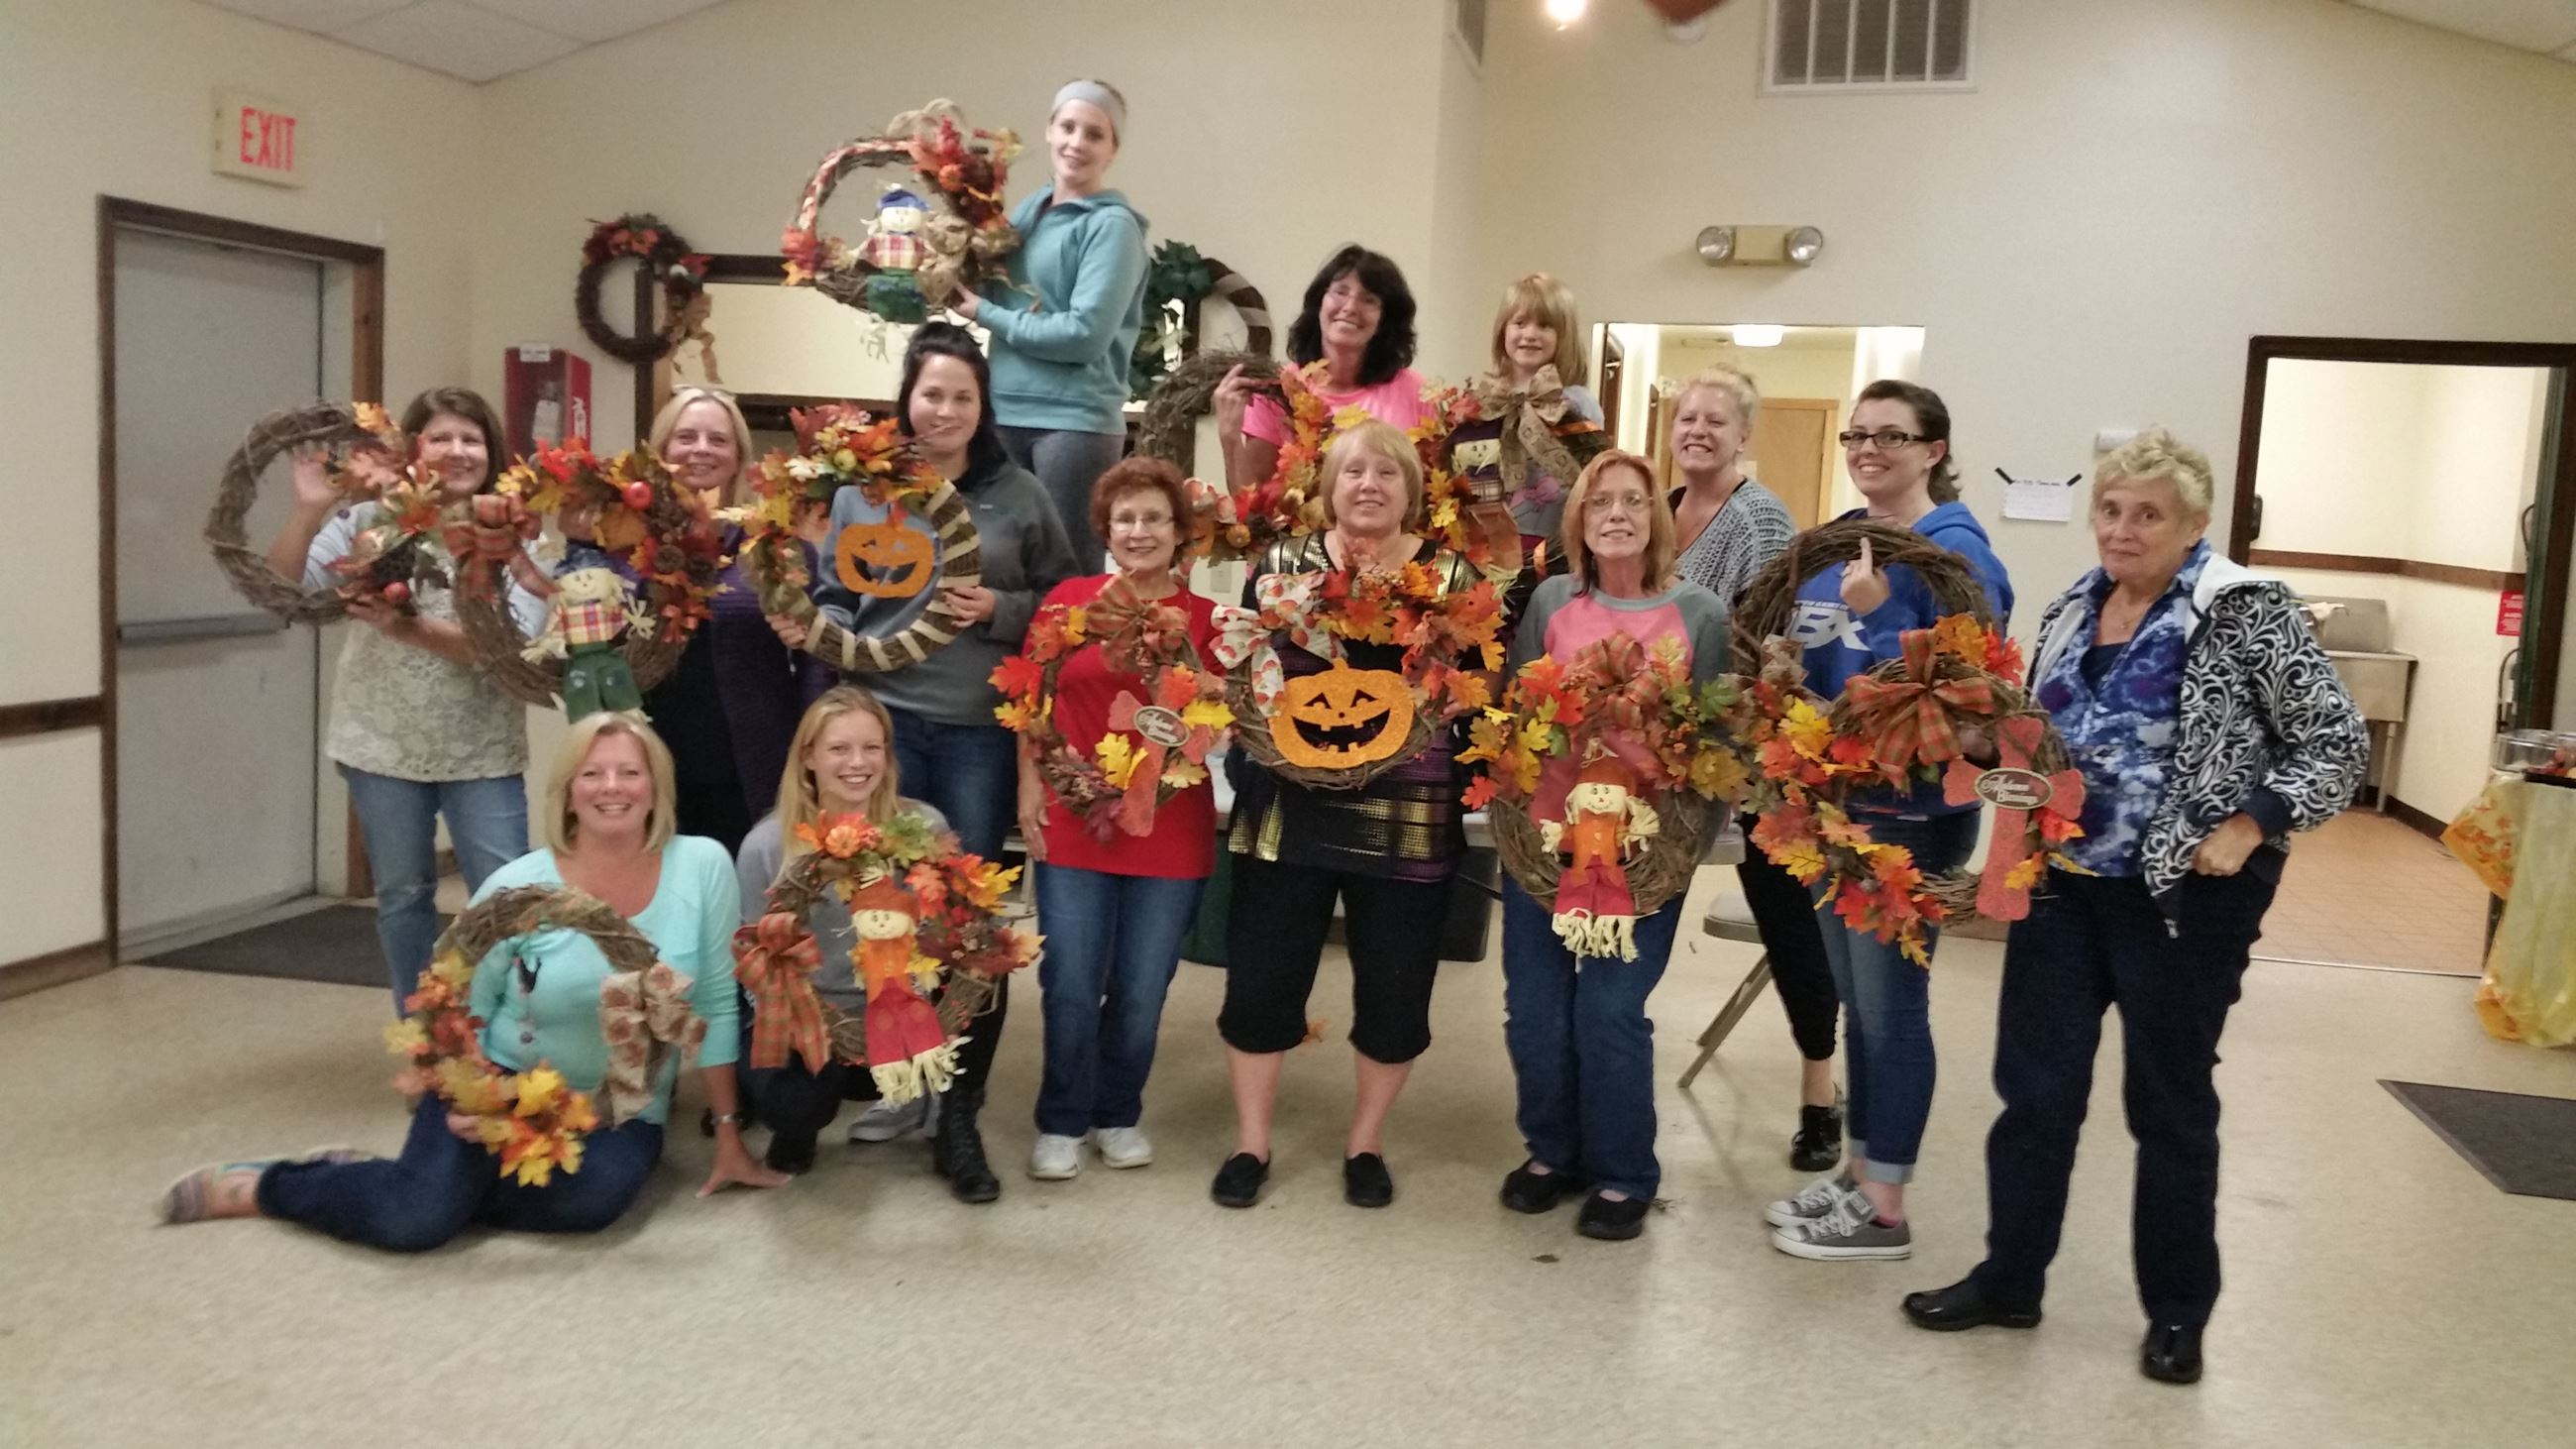 Wreath making oct 1 2015